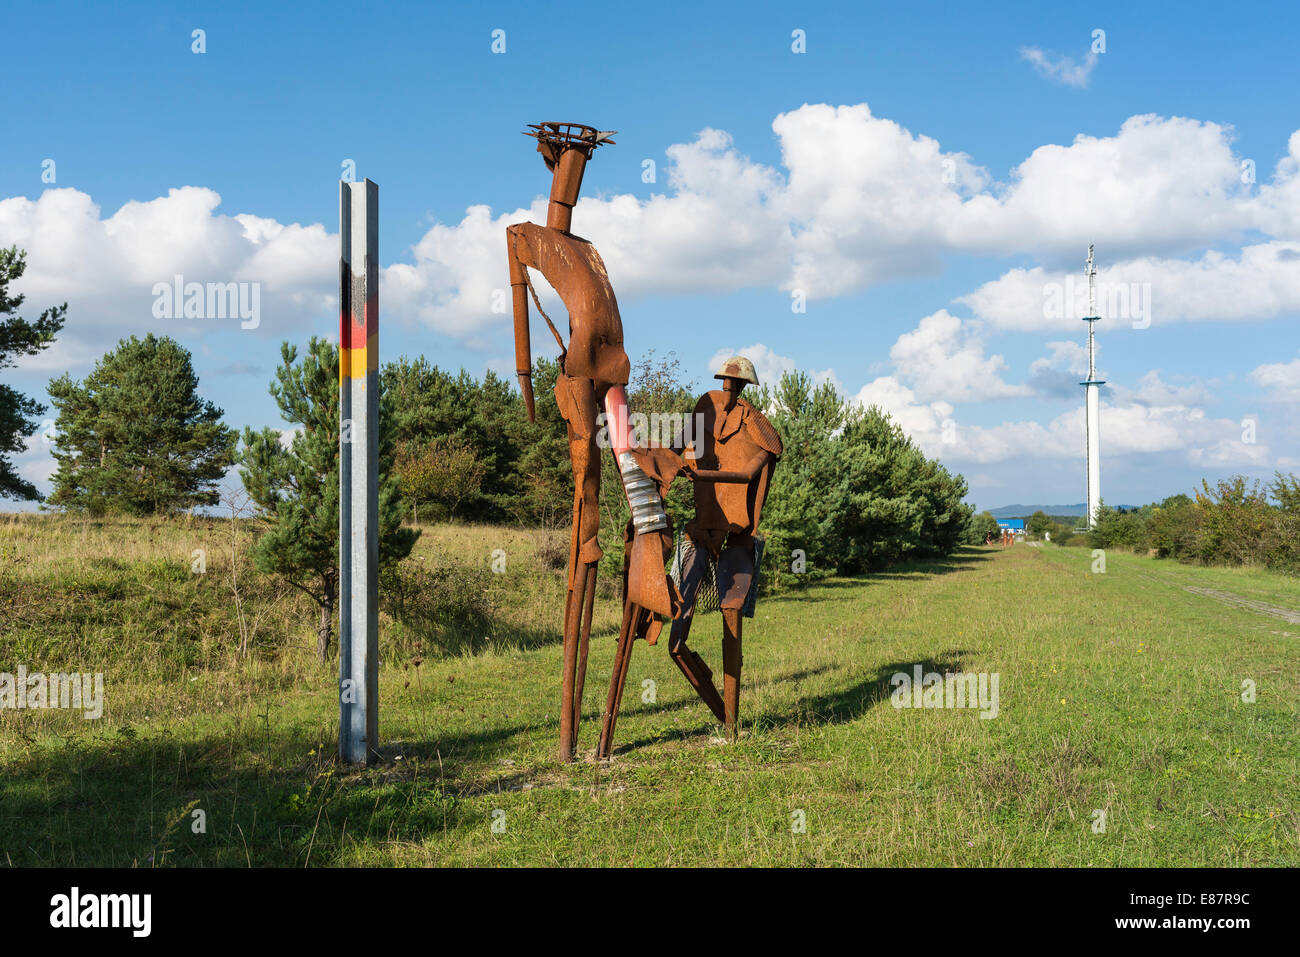 Sculptural group 'Entwürdigung', 'Degradation', Jesus is stripped of his garments, art project - Stock Image